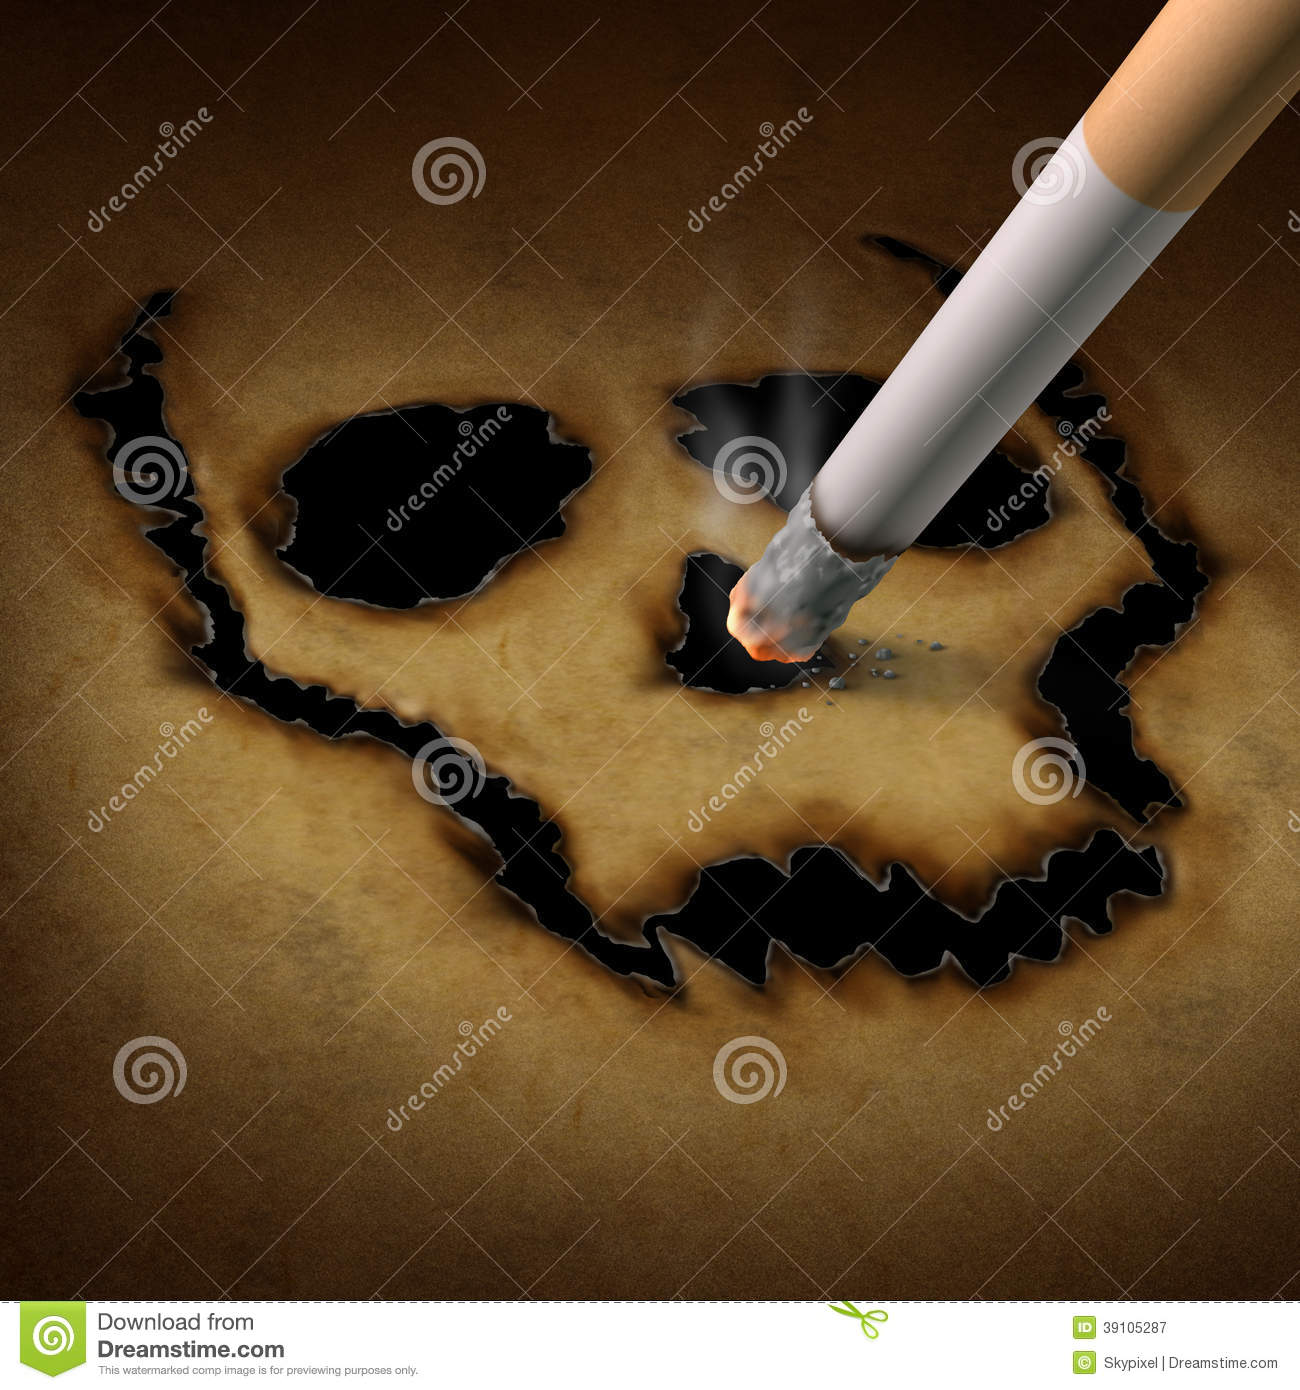 smoking causes cancer essay don t hesitate to order a custom dreamstime com